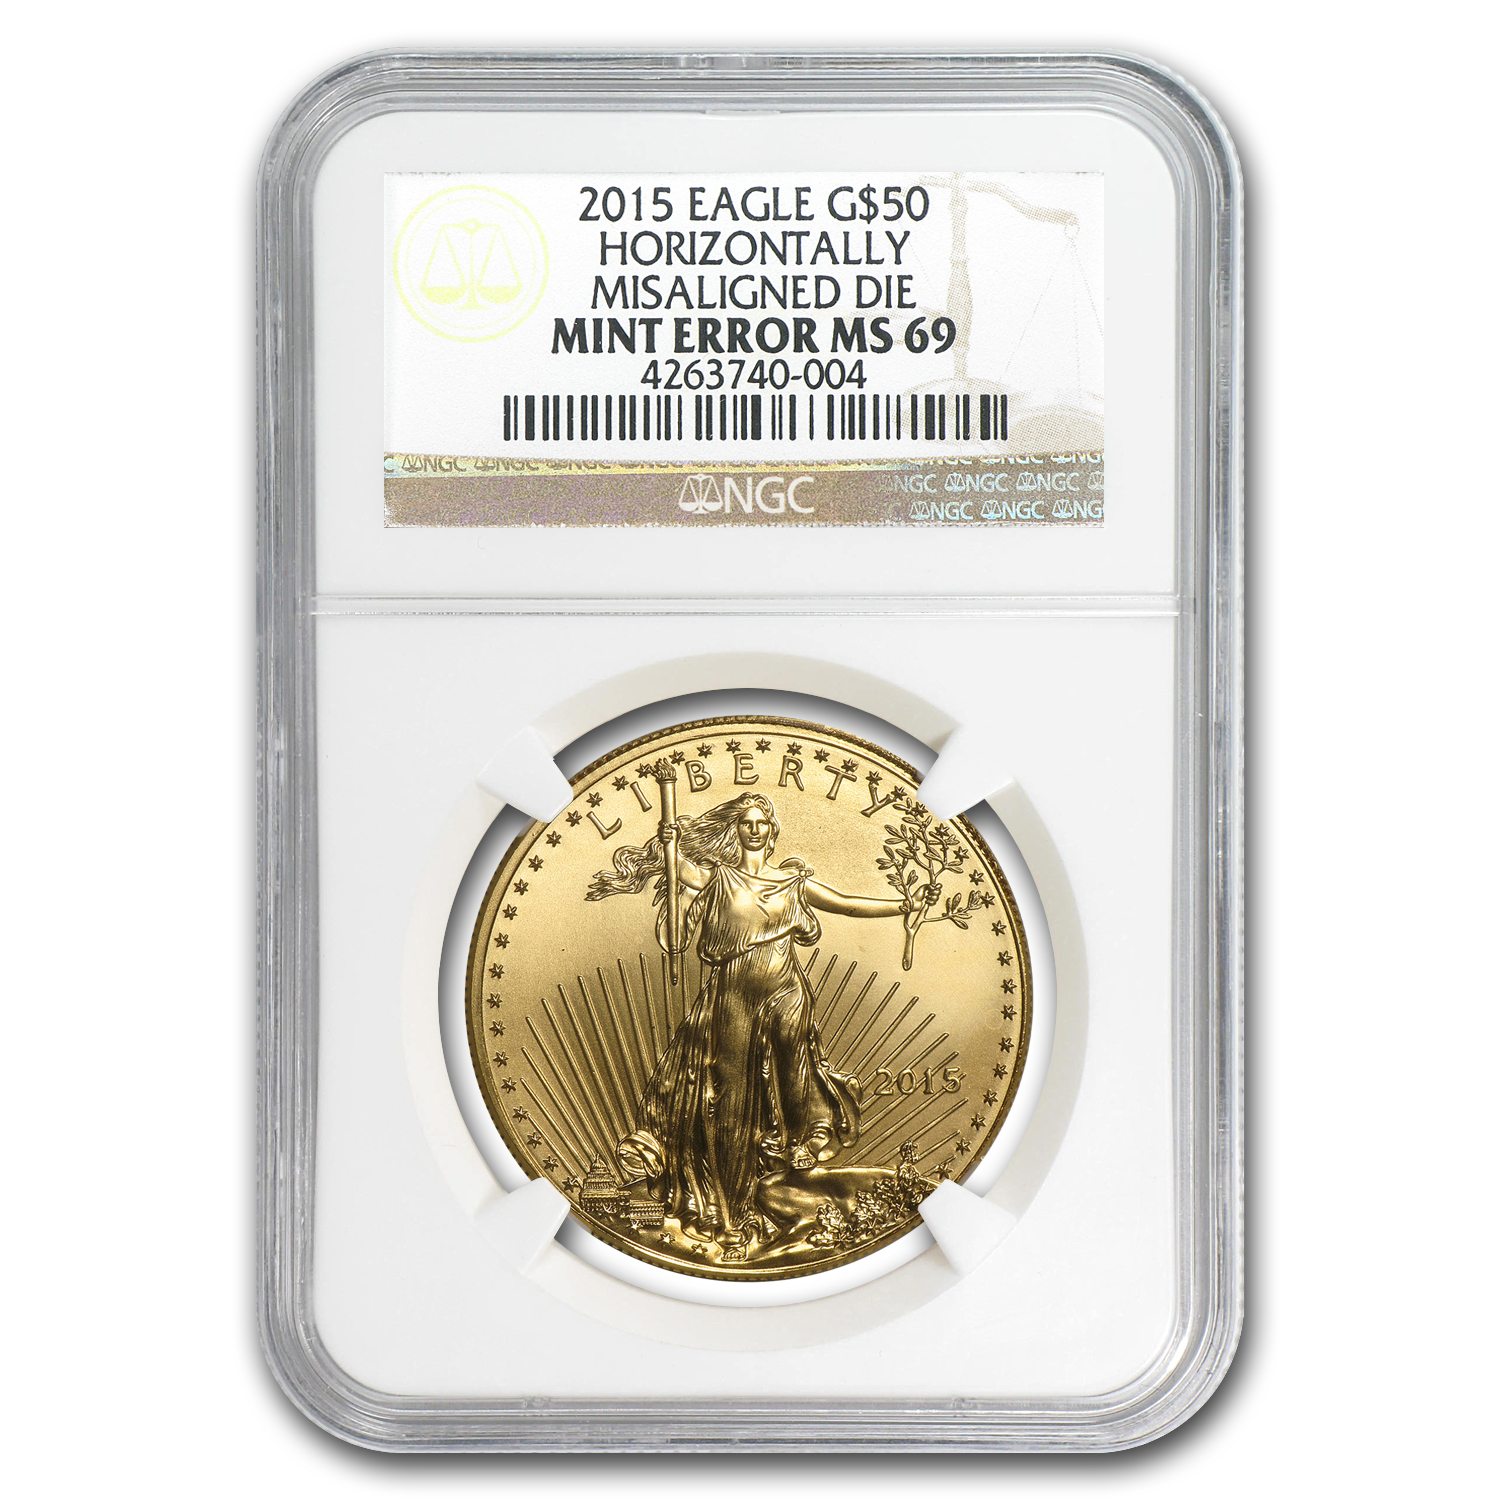 2015 1 oz Gold Eagle Major Mint Error NGC MS-69 (MISALIGNED DIE)